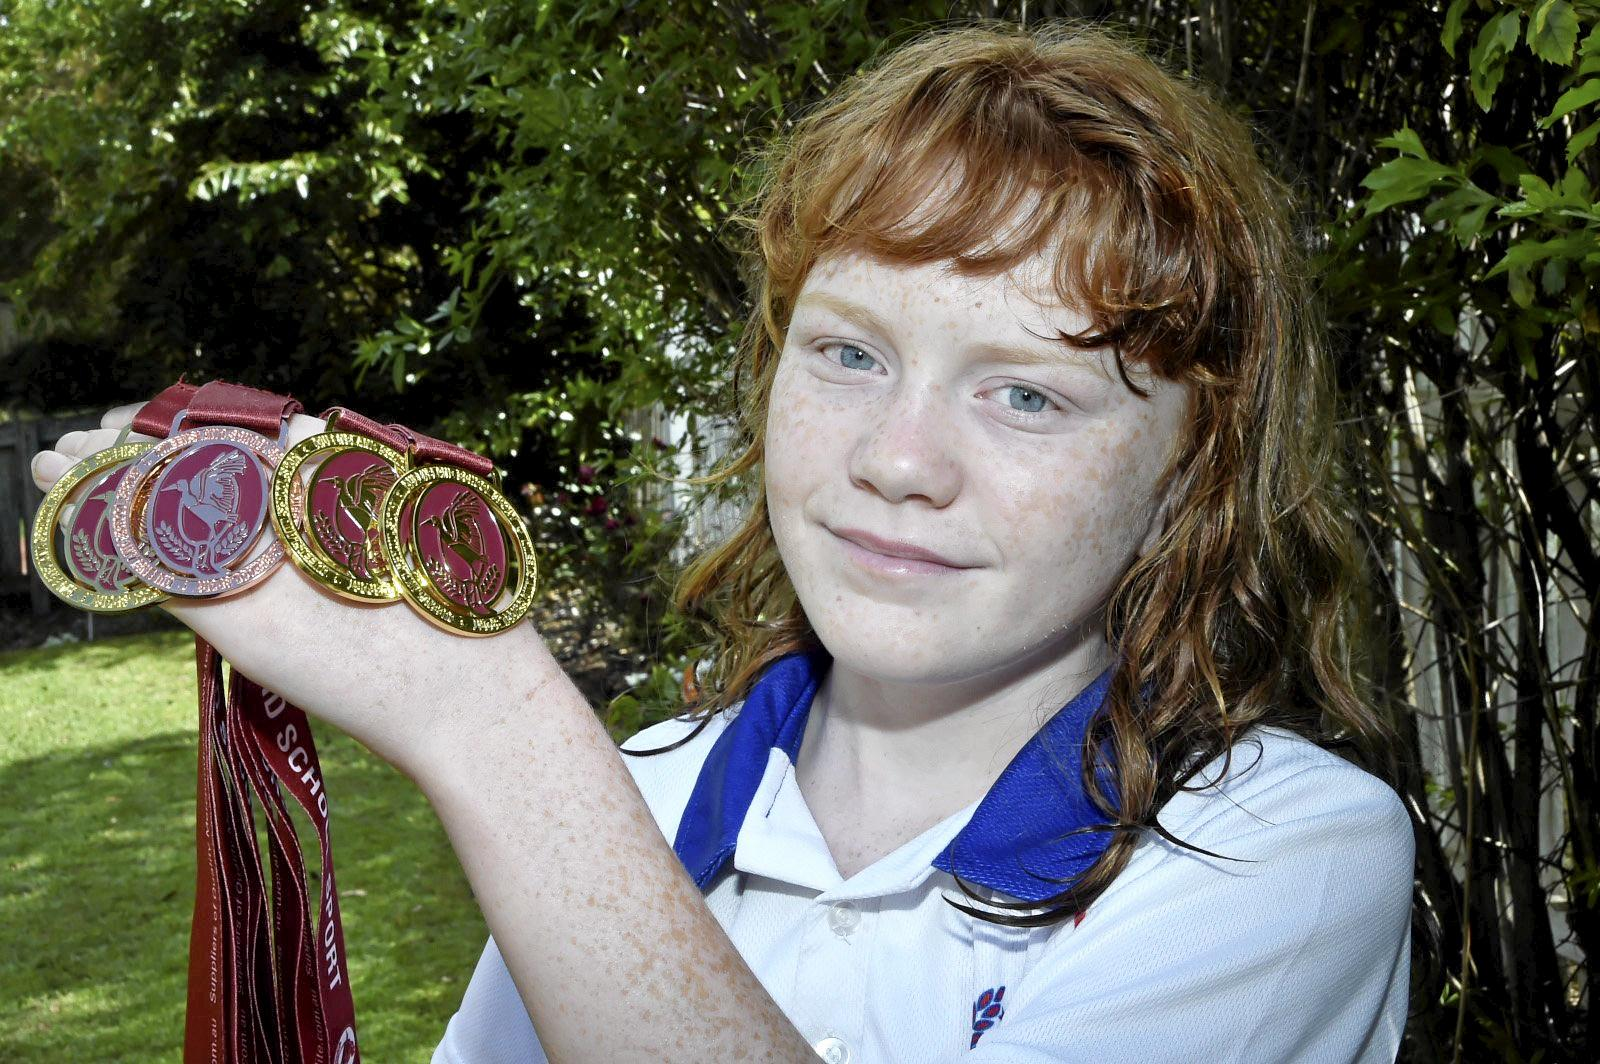 ATHLETIC STAR: Megan Seipel, 11, proudly shows off the medals she won at last weekend's 10-12 years Track and Field State Championships in Cairns.